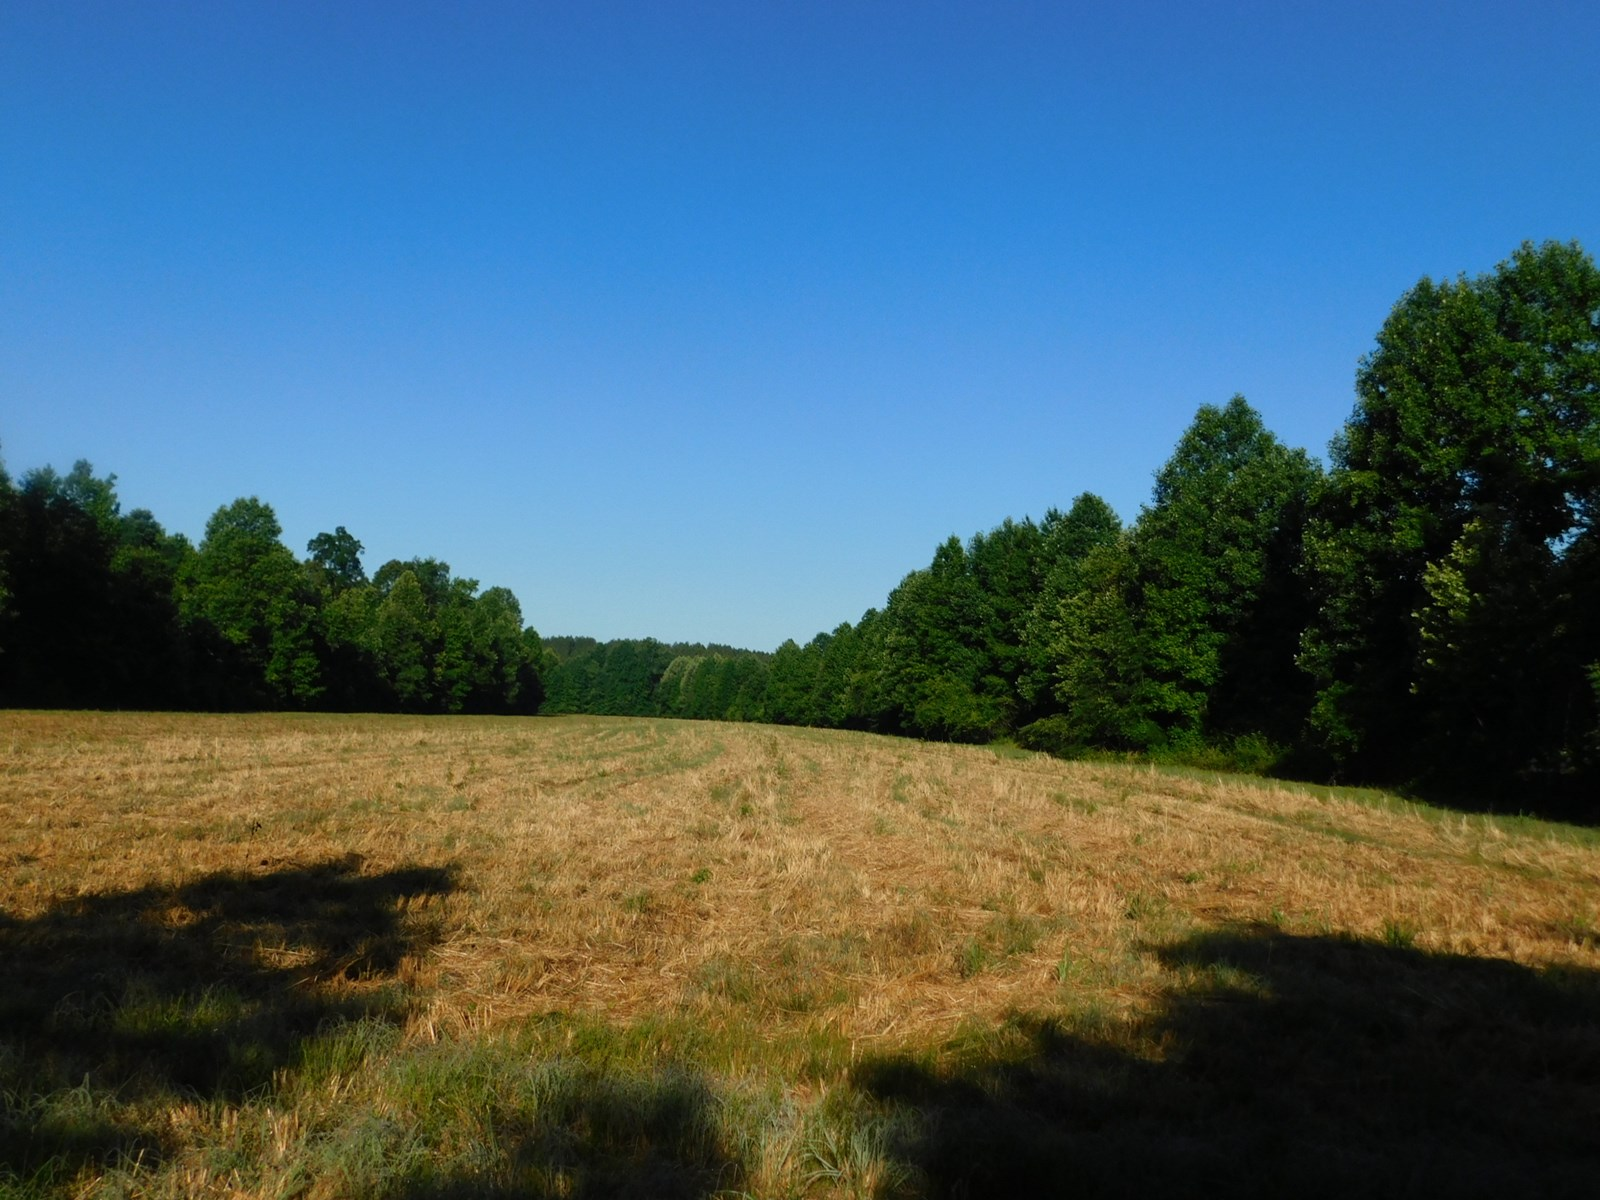 TN LAND FOR SALE, NO RESTRICTIONS, TIMBER, PASTURE, CREEK